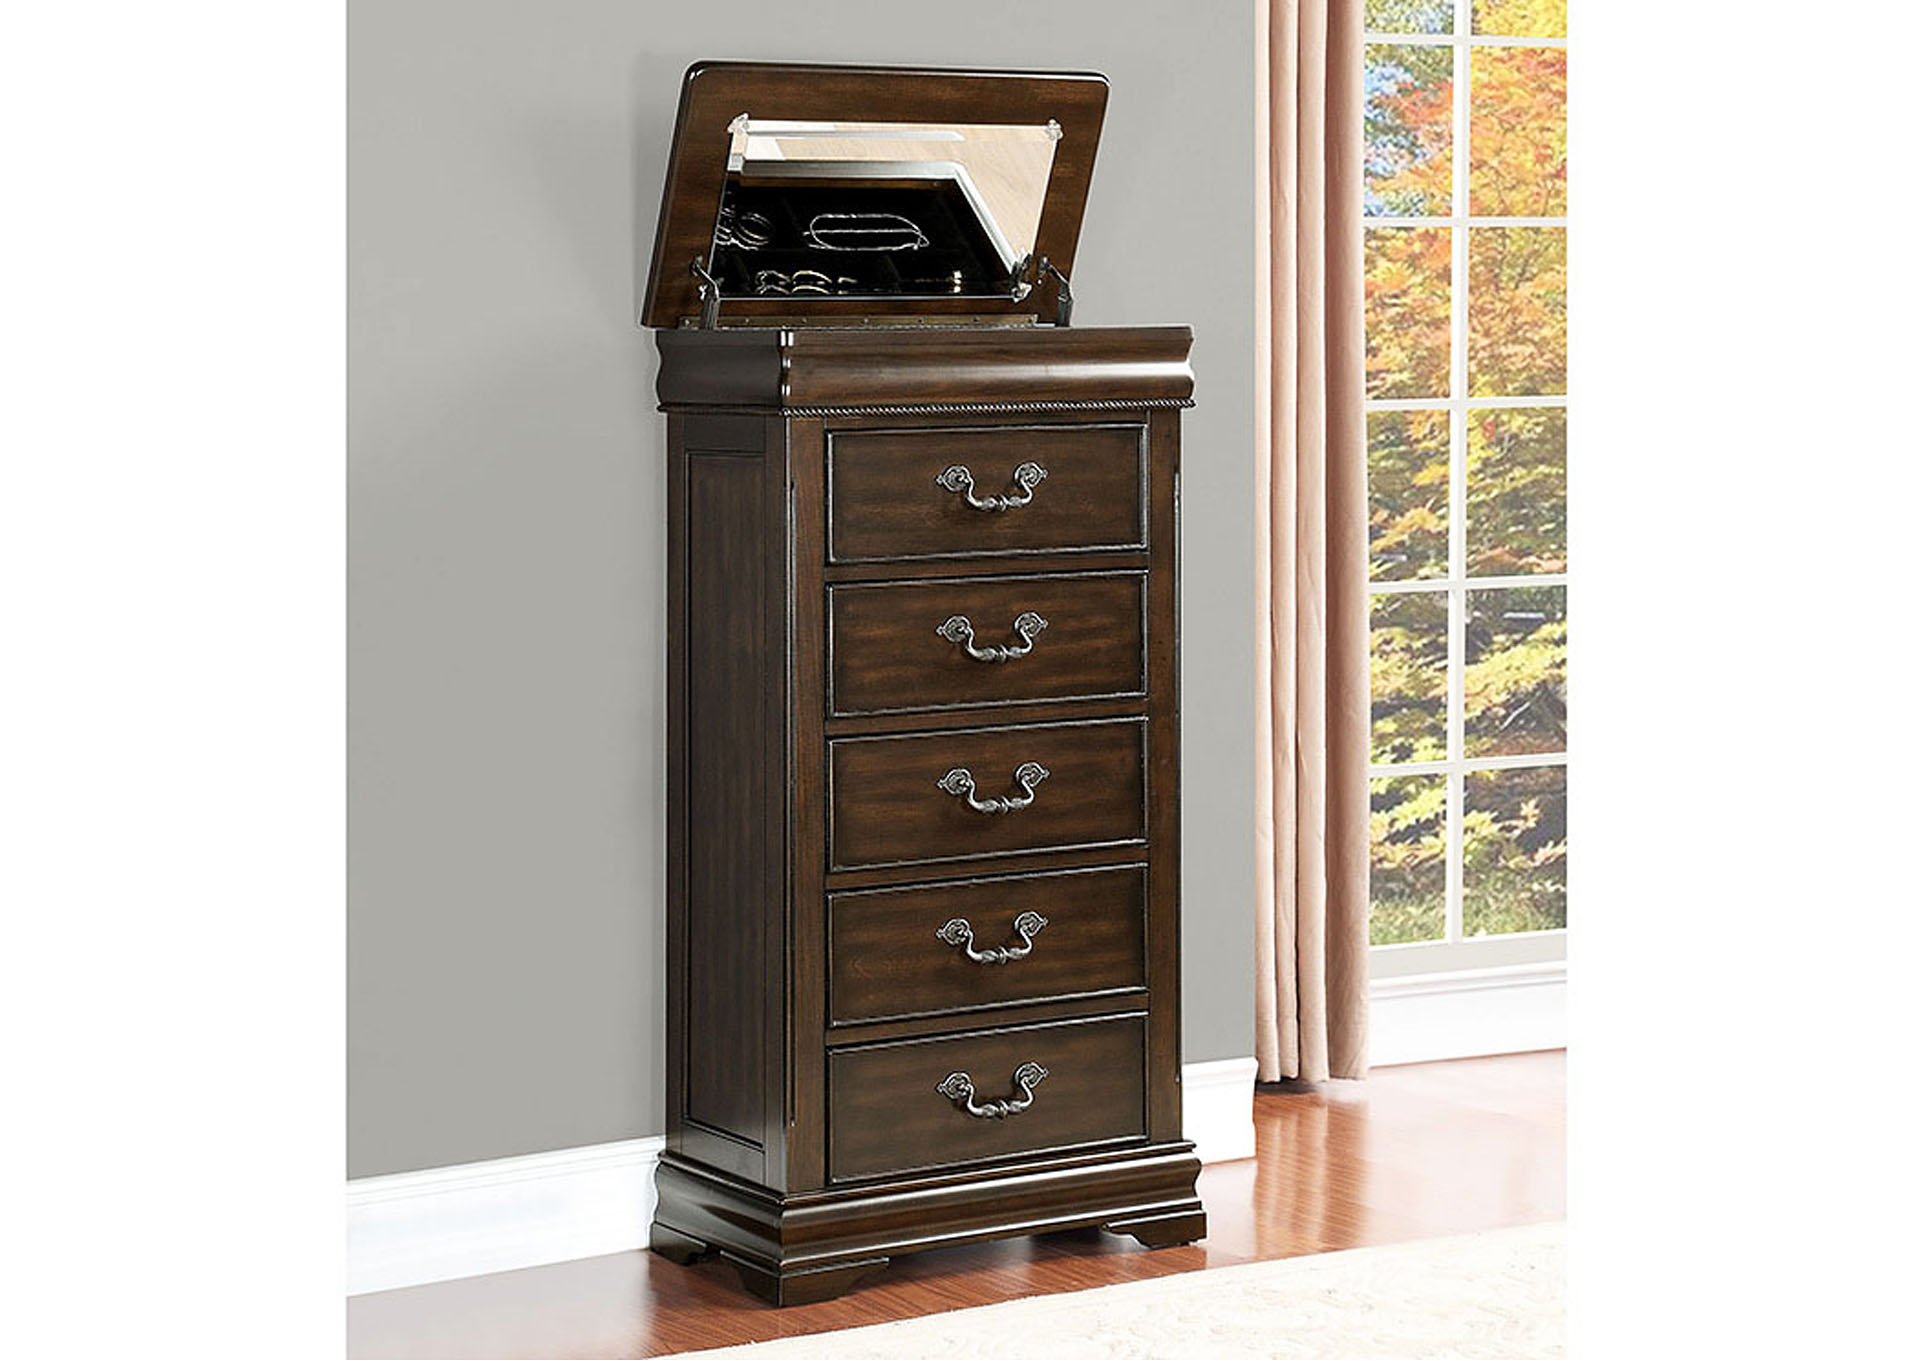 Mont Belvieu Cherry Lift-top Lingerie Drawer Chest,Homelegance